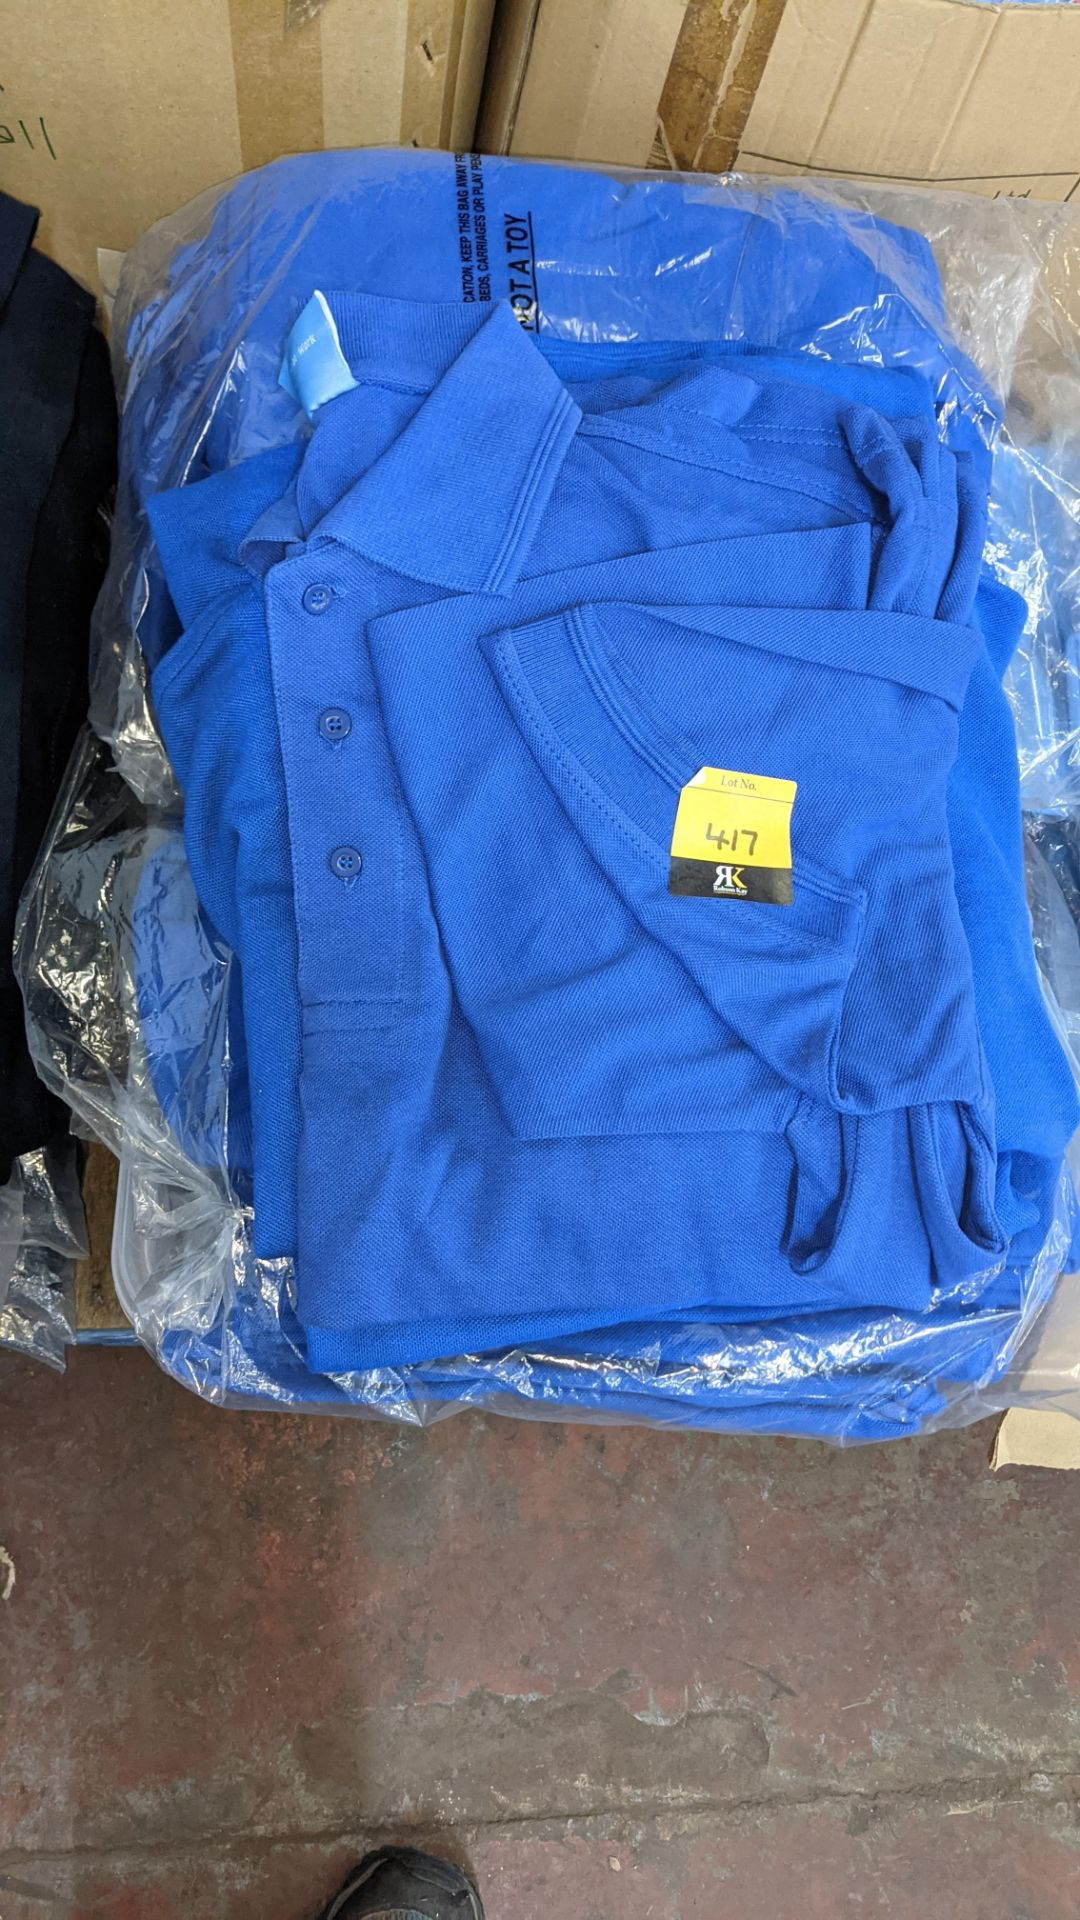 Approx 75 off assorted shades of blue polo shirts - Image 3 of 6